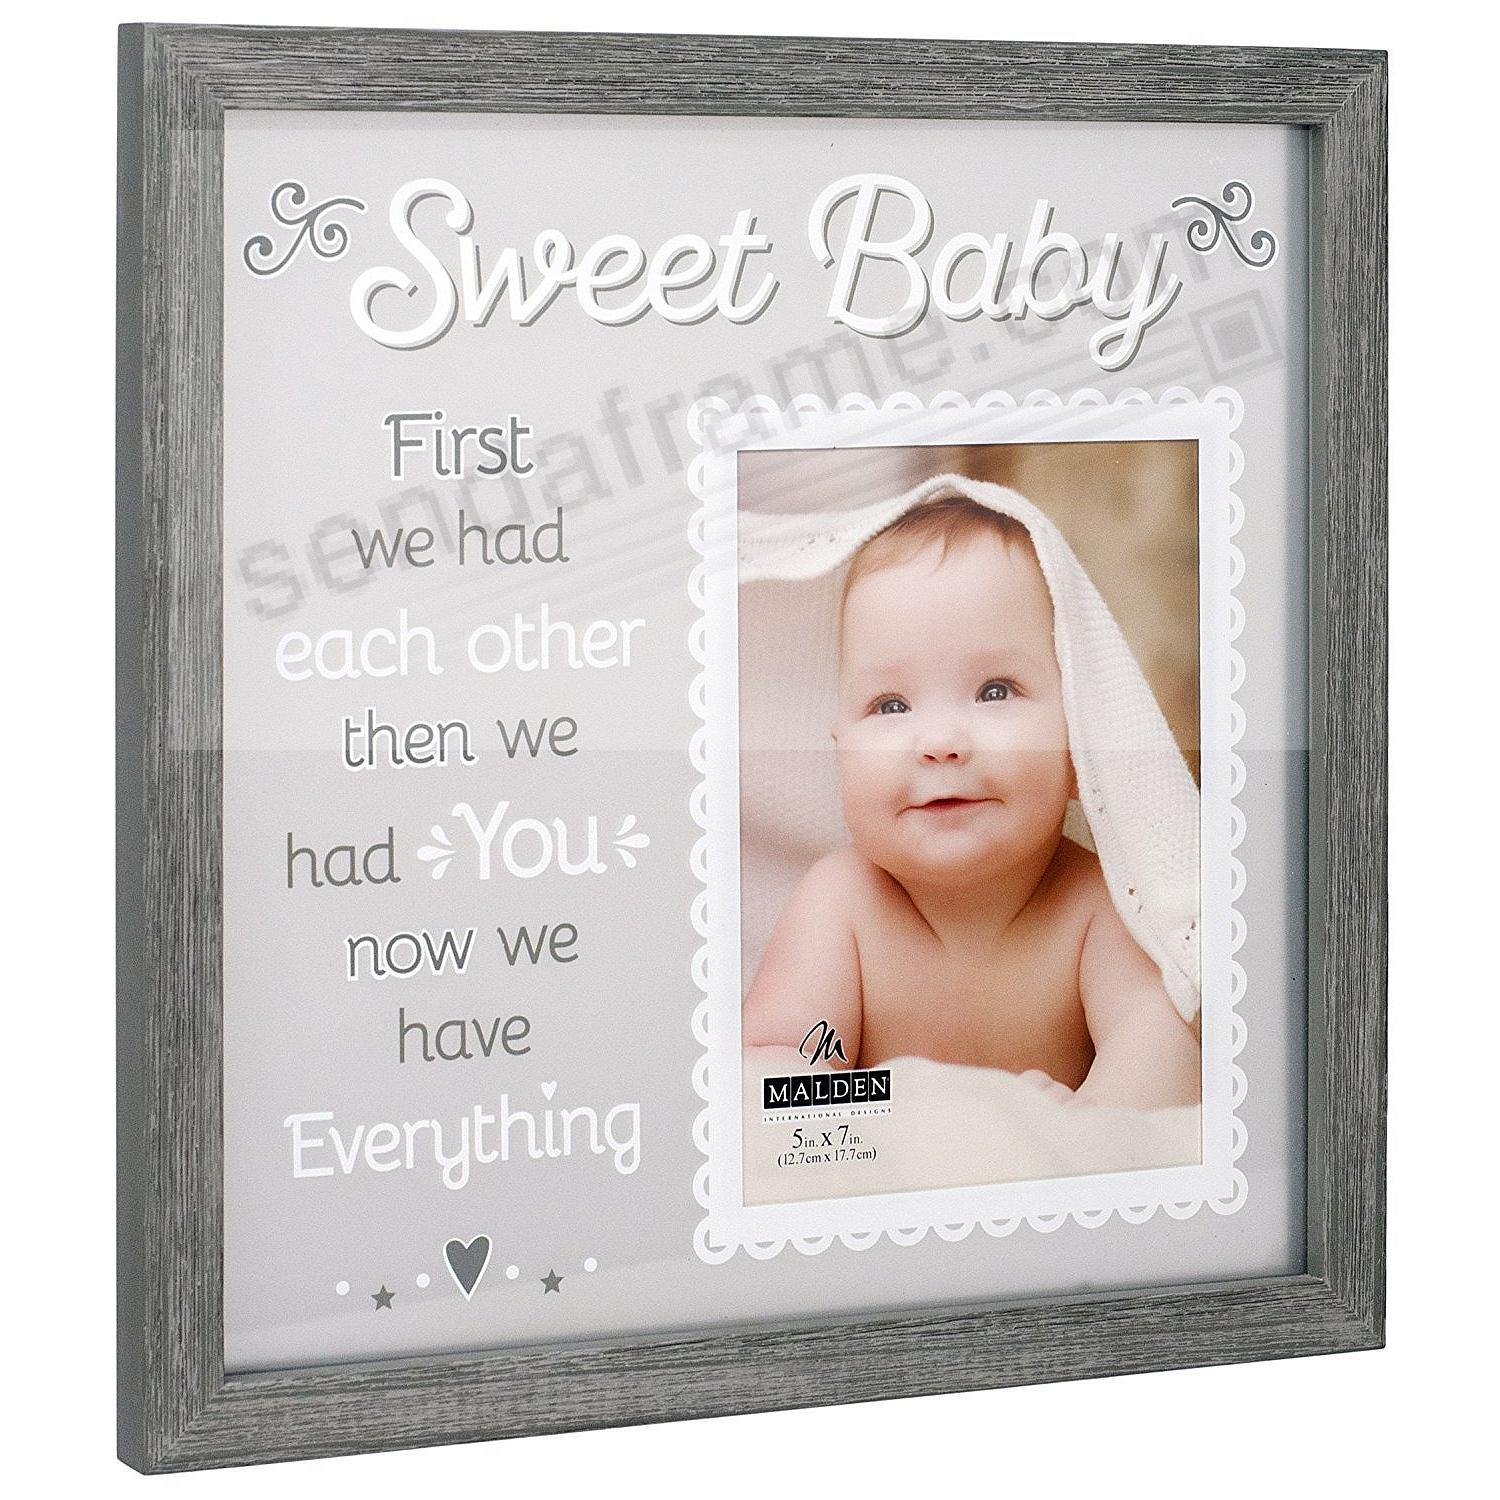 NOW WE HAVE EVERYTHING Sweet Baby 5x7 frame by Malden Designs®